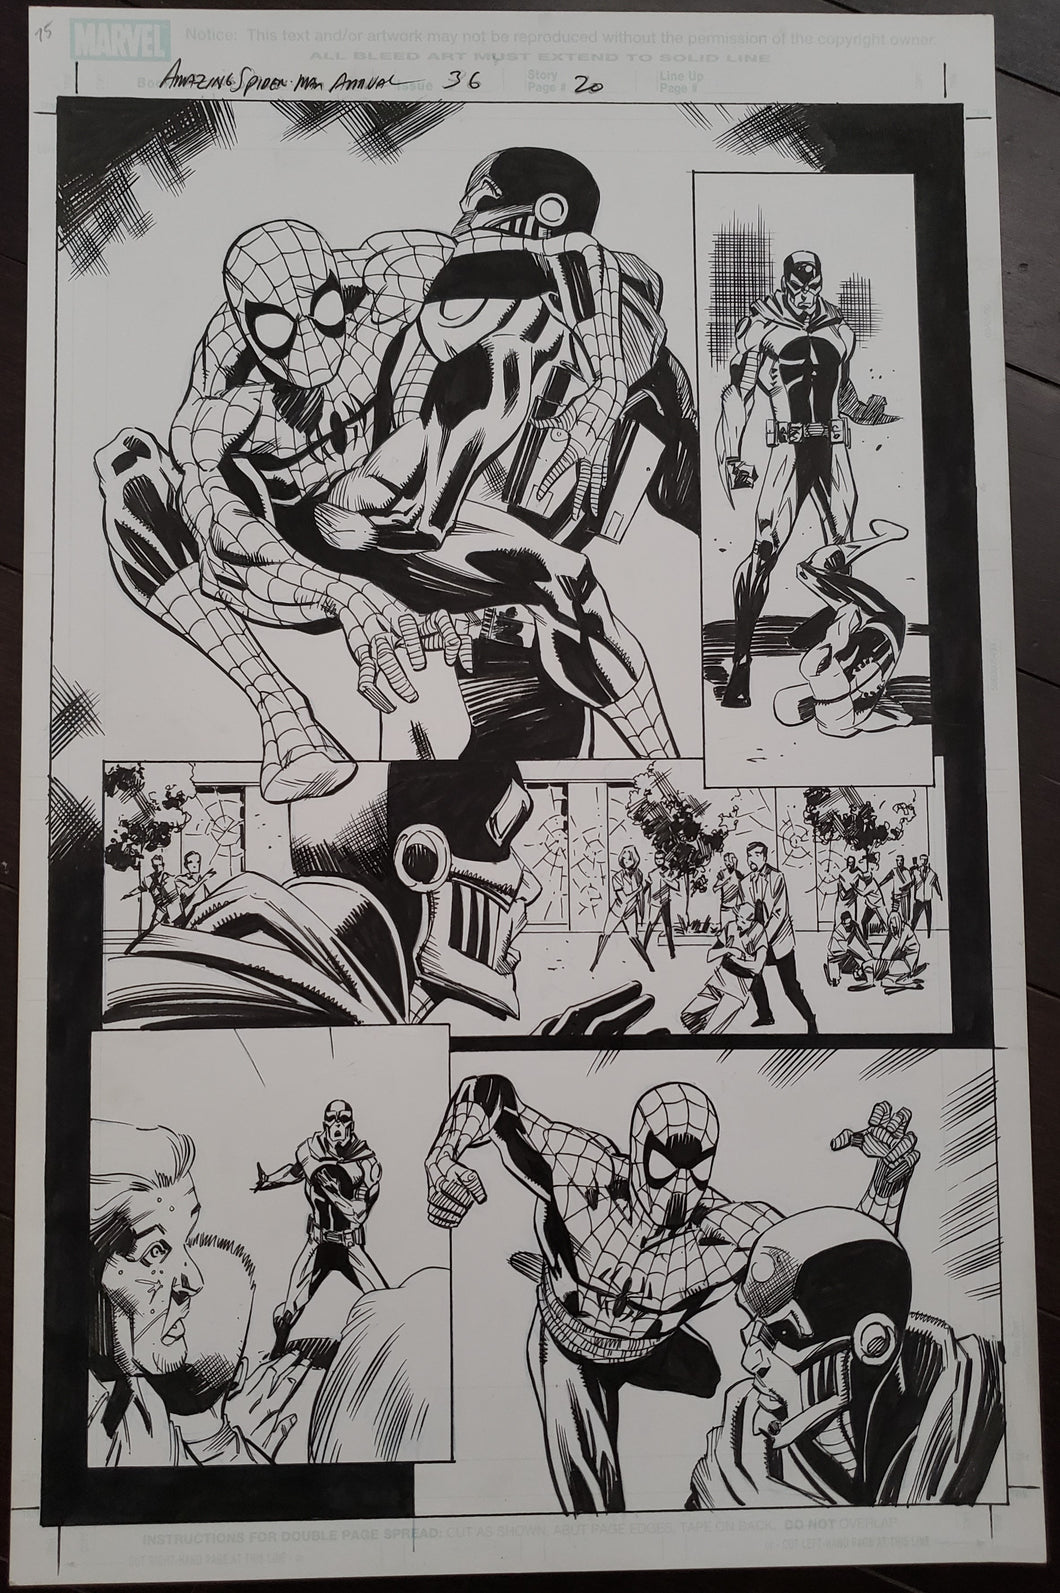 Amazing Spider-Man Annual 36 - Page 20 - Pat Oliffe / Andy Lanning - FIRST APPEARANCE!!